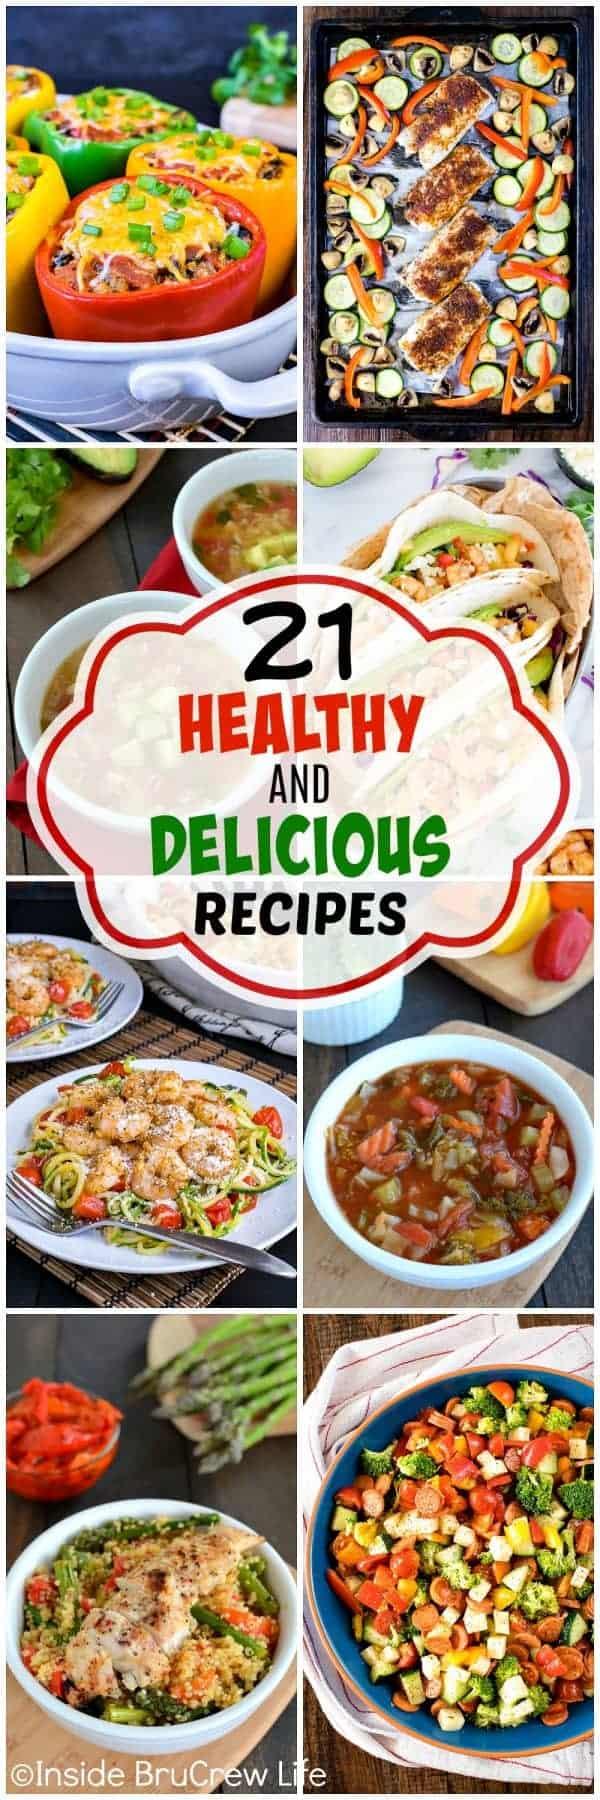 21 Healthy and Delicious Recipes - plan a month of meals using these easy and healthy recipes. Easy recipes to help you with your health journey!